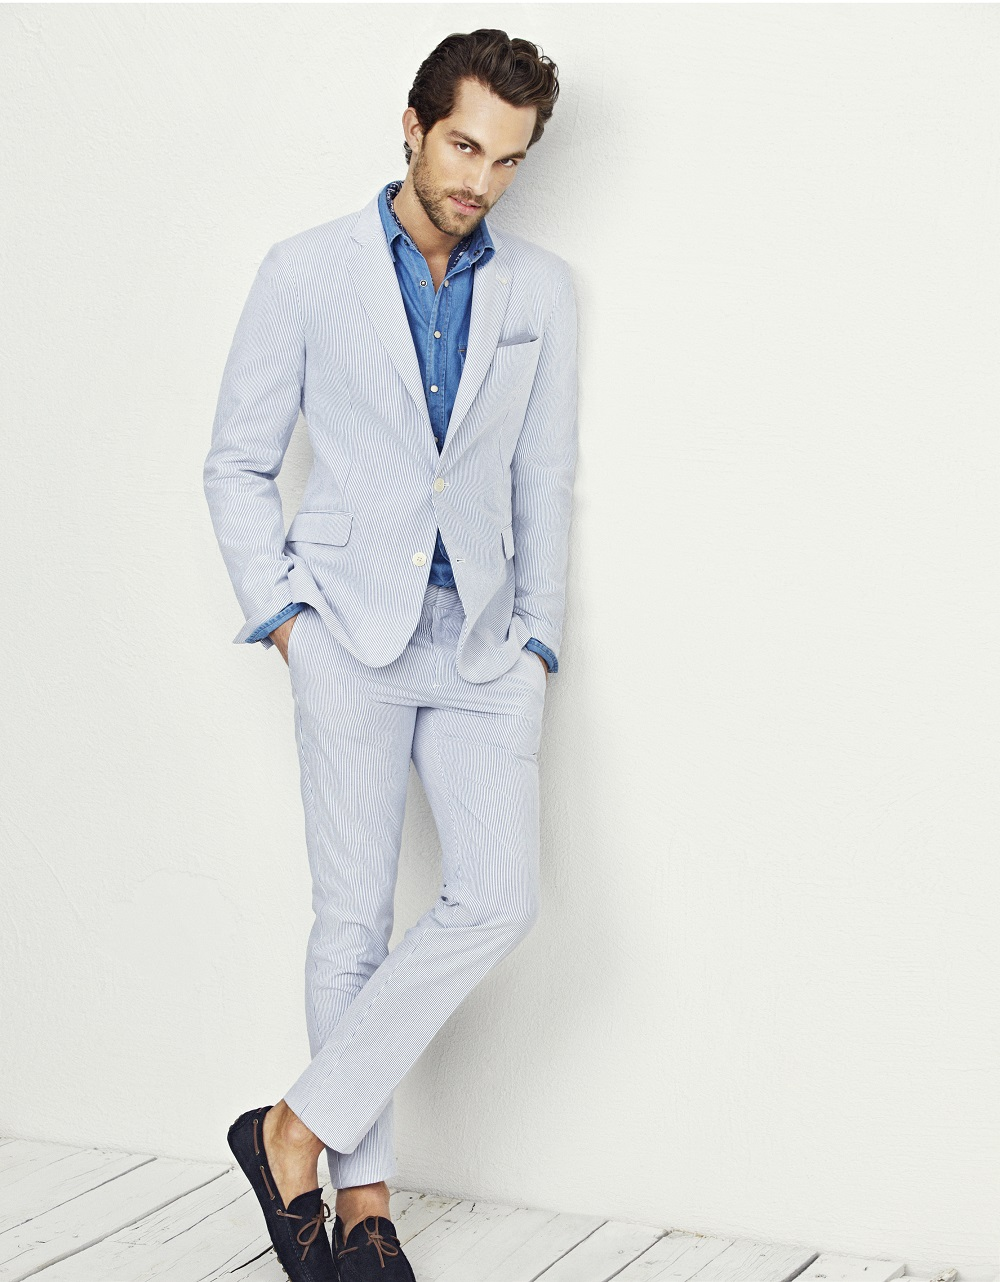 HE BY MANGO LOOKBOOK 2013